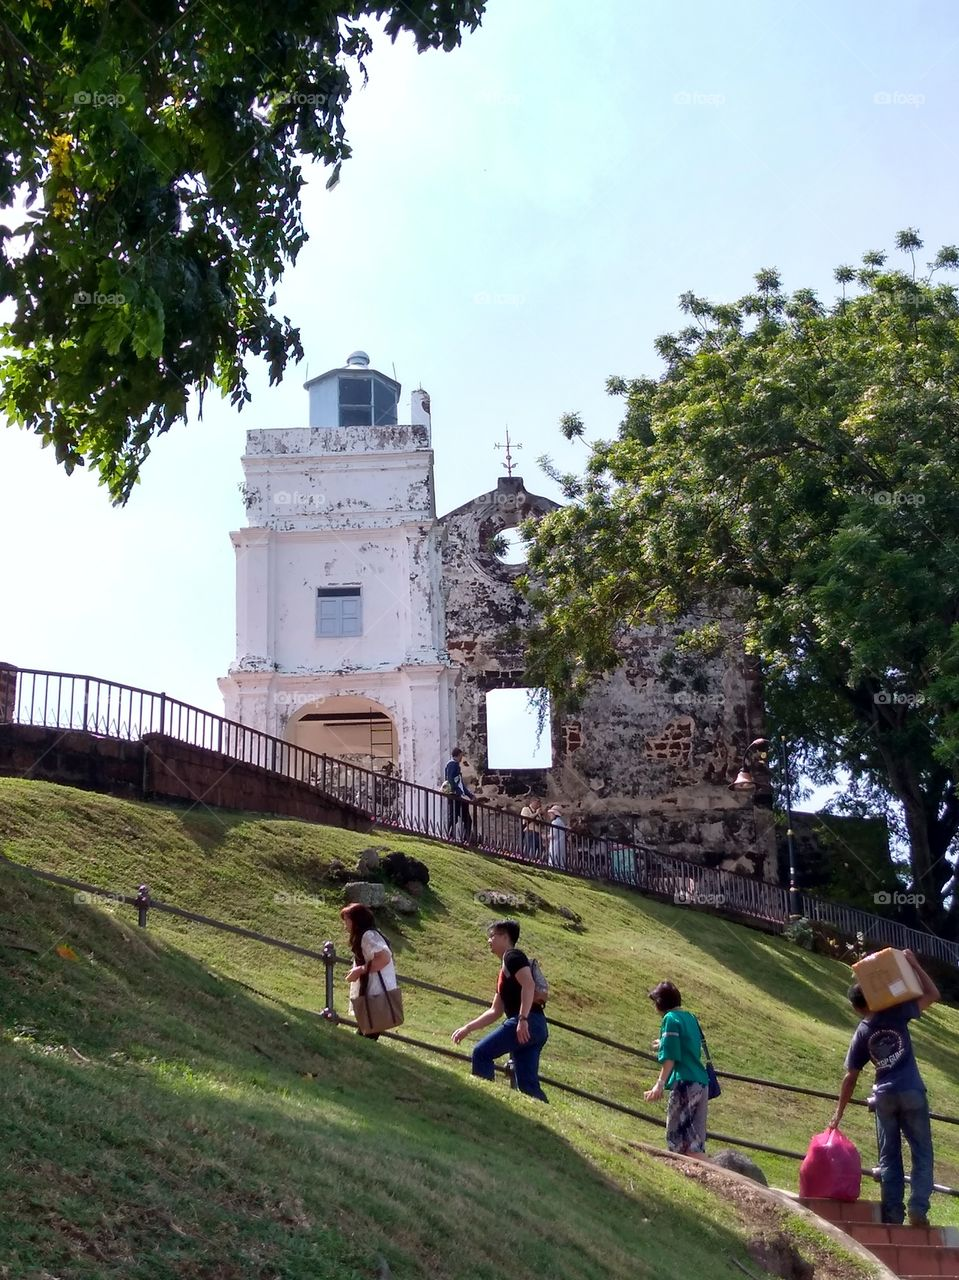 Malacca itinerary 1 day St. Paul's Hill & Church (Bukit St. Paul) (4)